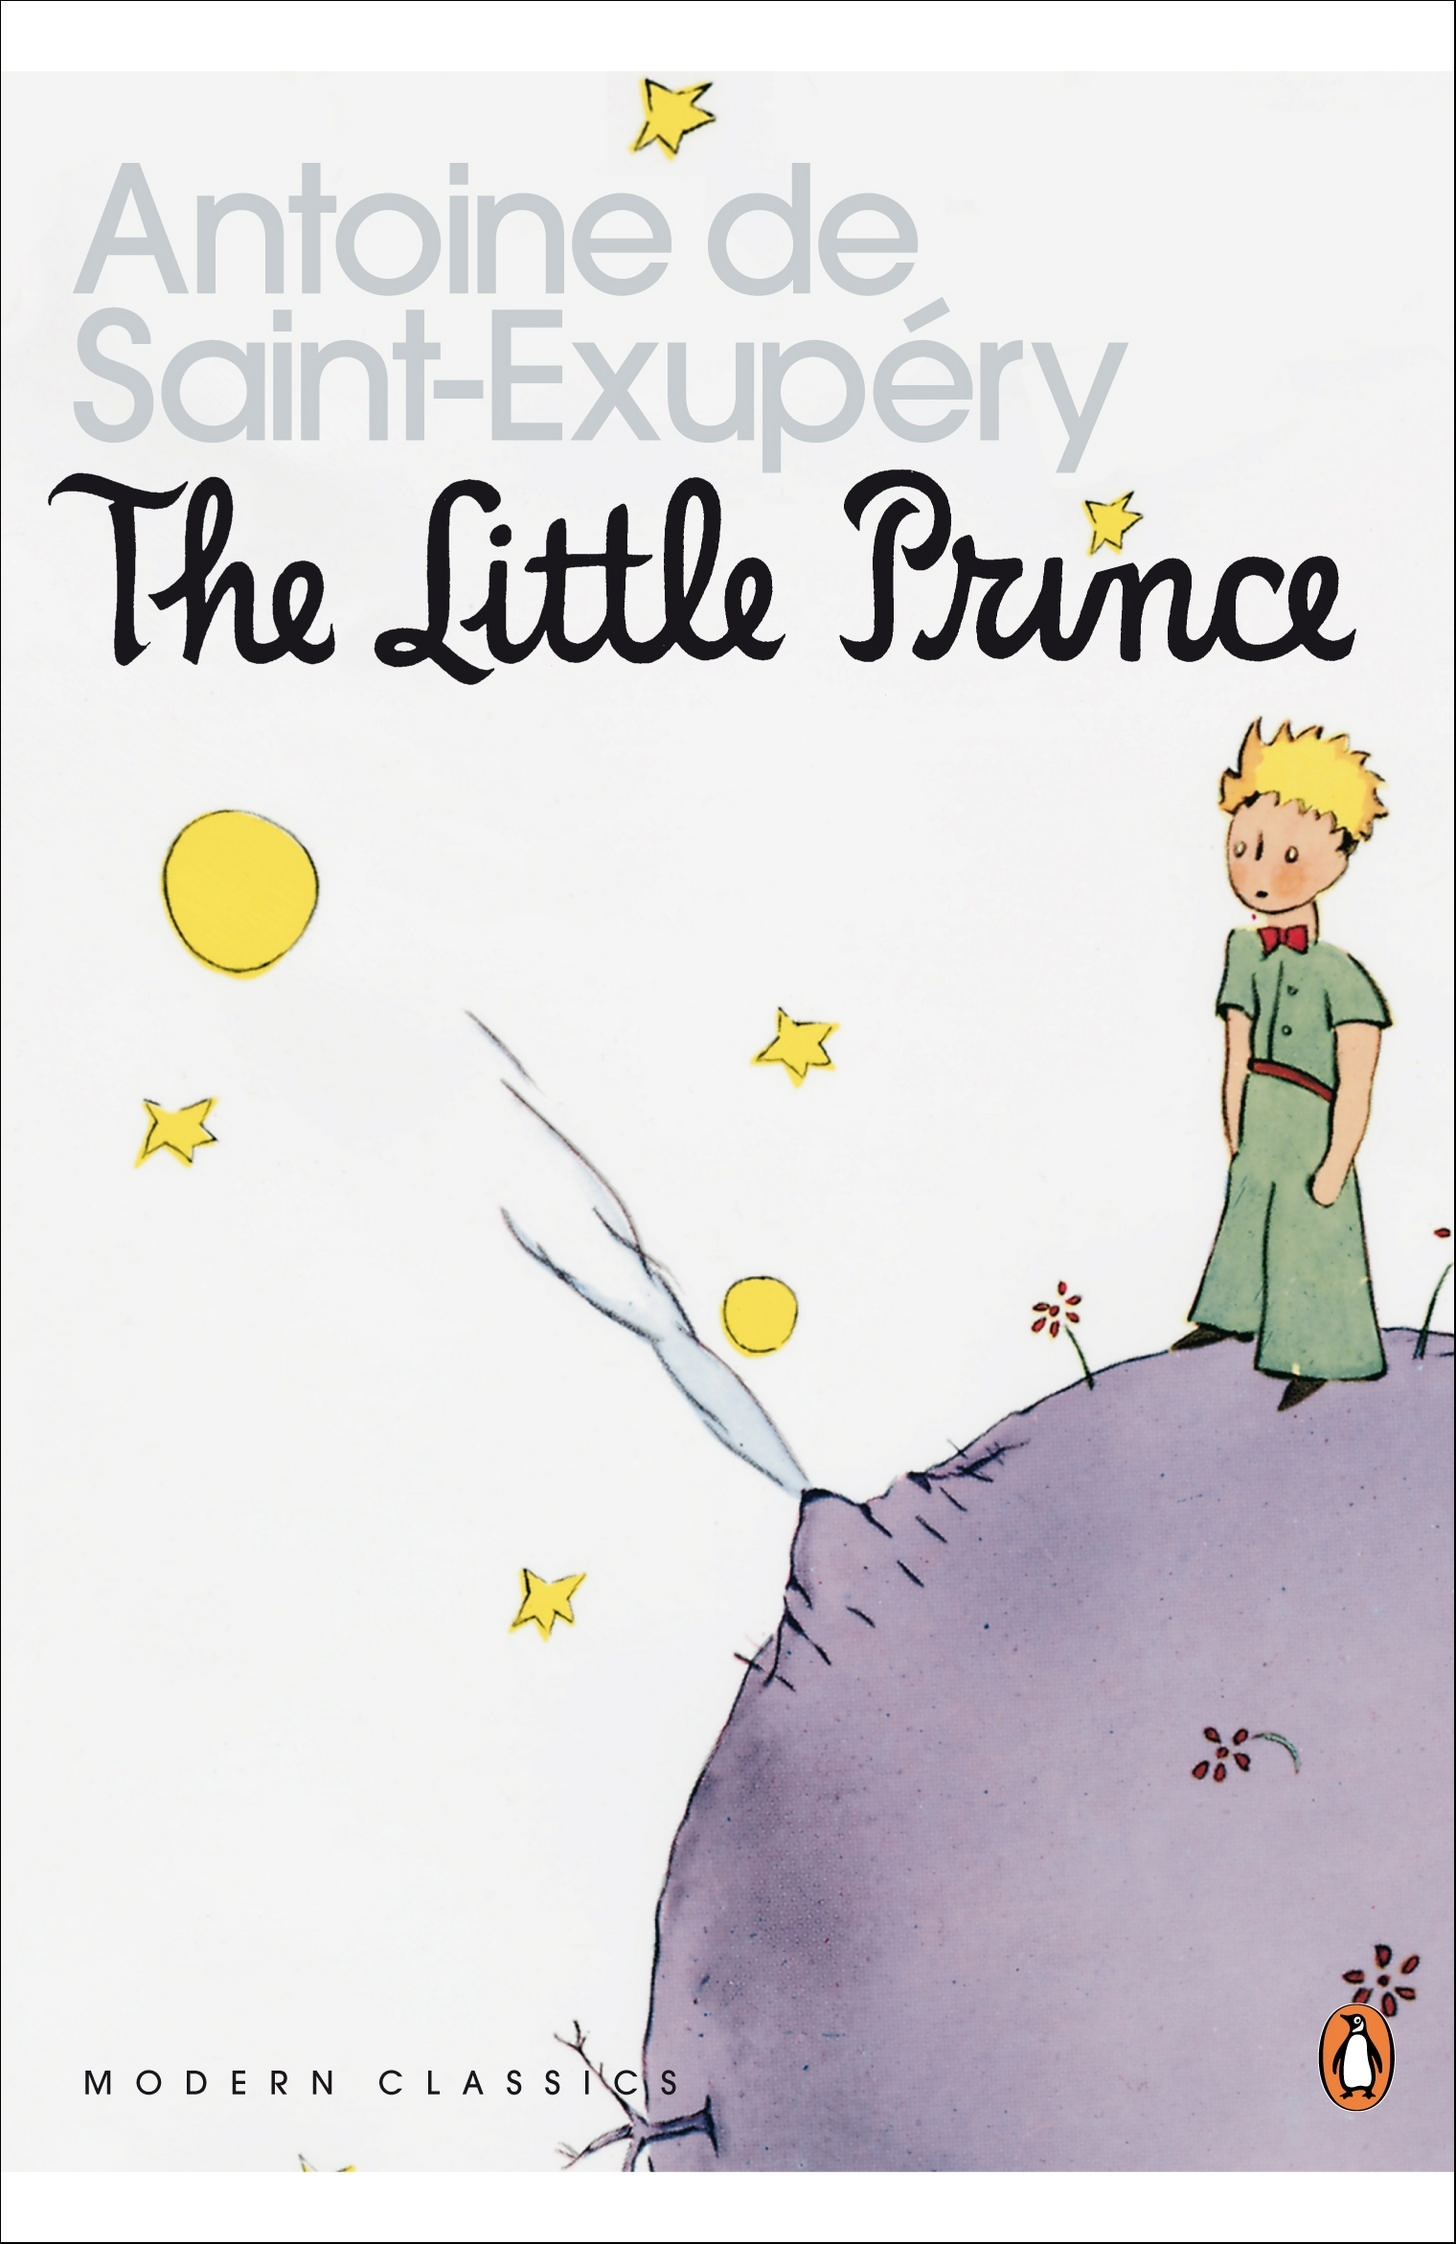 """<i><a href=""""http://www.amazon.com/dp/0749707232/?tag=timecom-20"""" target=""""_blank"""">The Little Prince</a></i>                                   By Antoine de Saint-Exupéry, 96 pages. A boy from a mysterious planet teaches a pilot stranded in the desert about love, imagination and the tragedy of adulthood."""